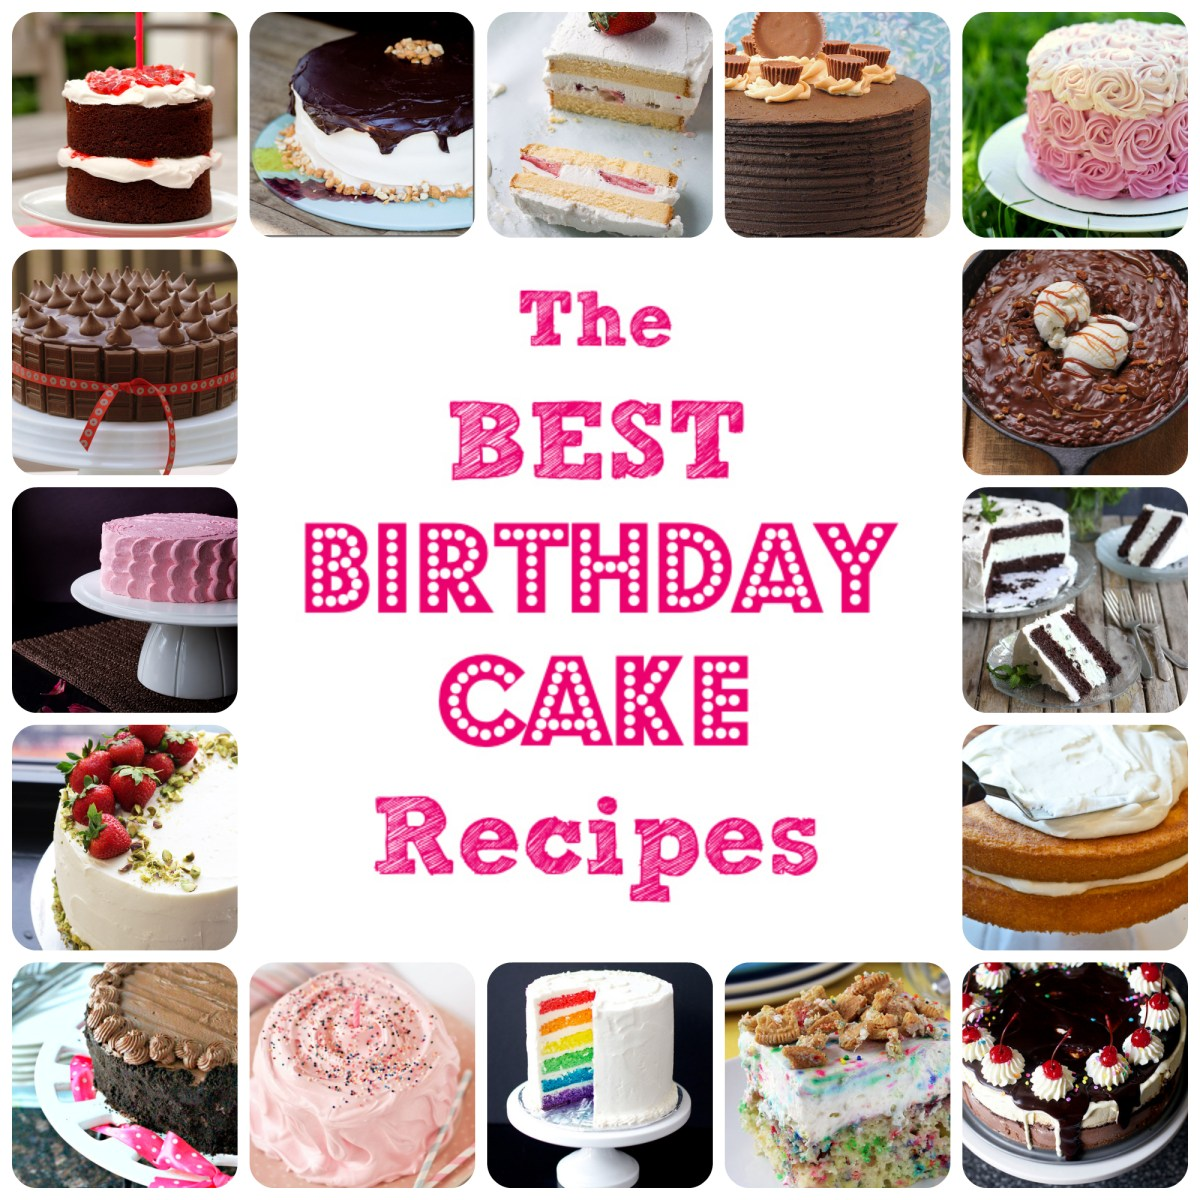 Best Birthday Cake Recipe The Best Birthday Cake Recipes 52 Kitchen Adventures